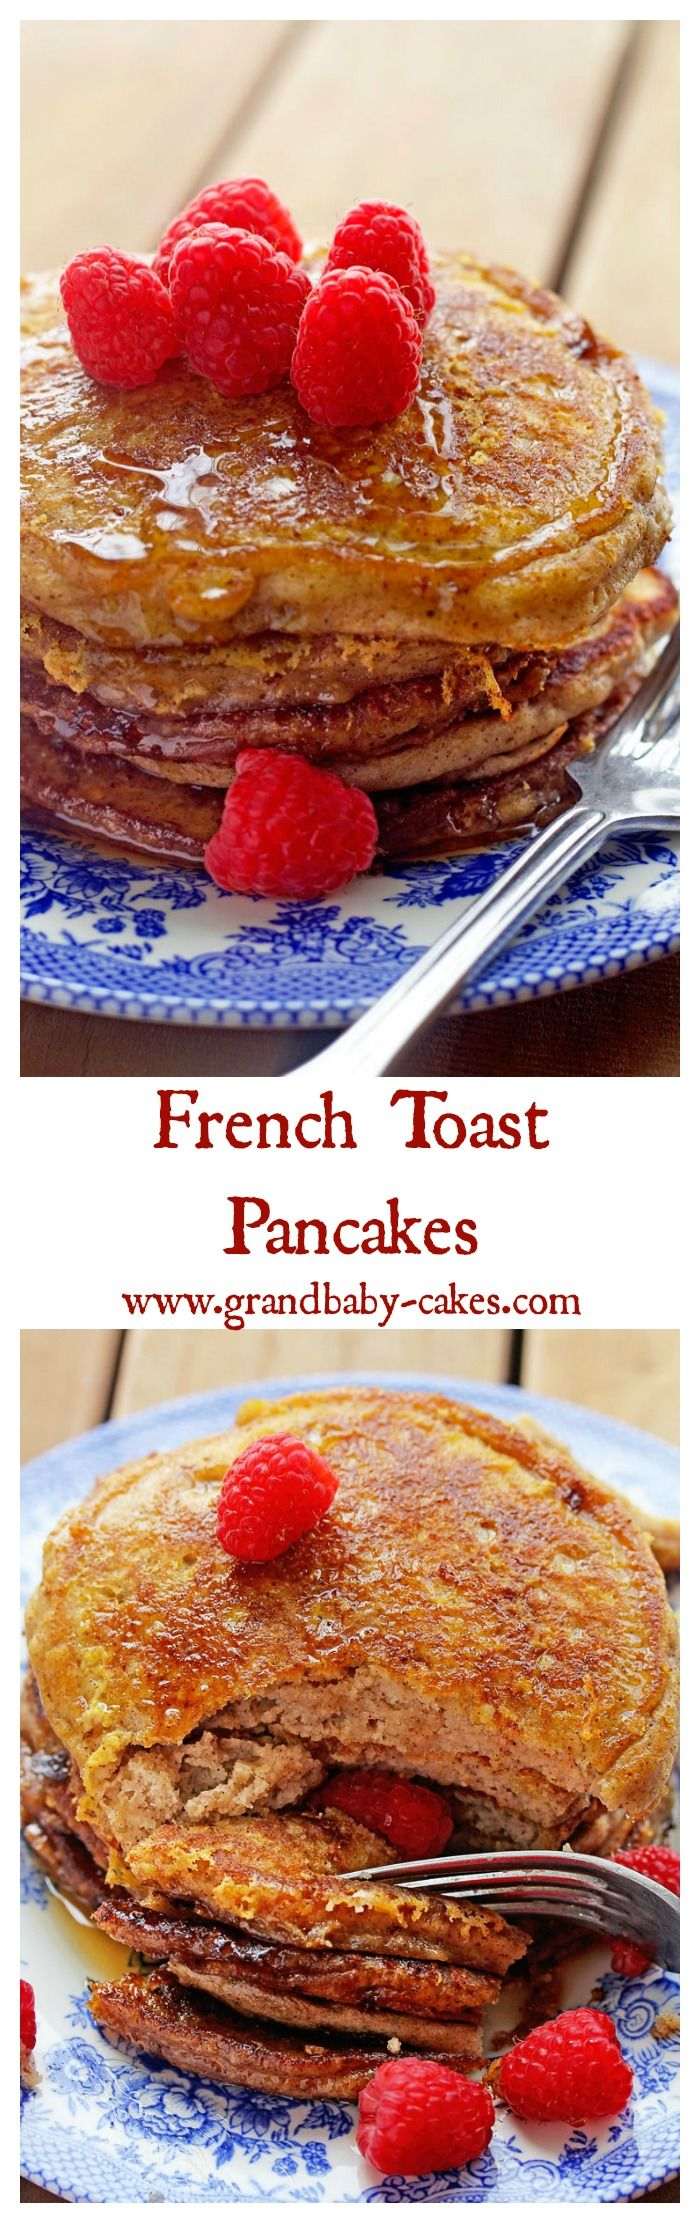 French Toast Pancakes and GIVEAWAY!  French Toast and Pancakes Collide in these delish recipe from the Stack Happy Cookbook! ~ http://www.grandbaby-cakes.com